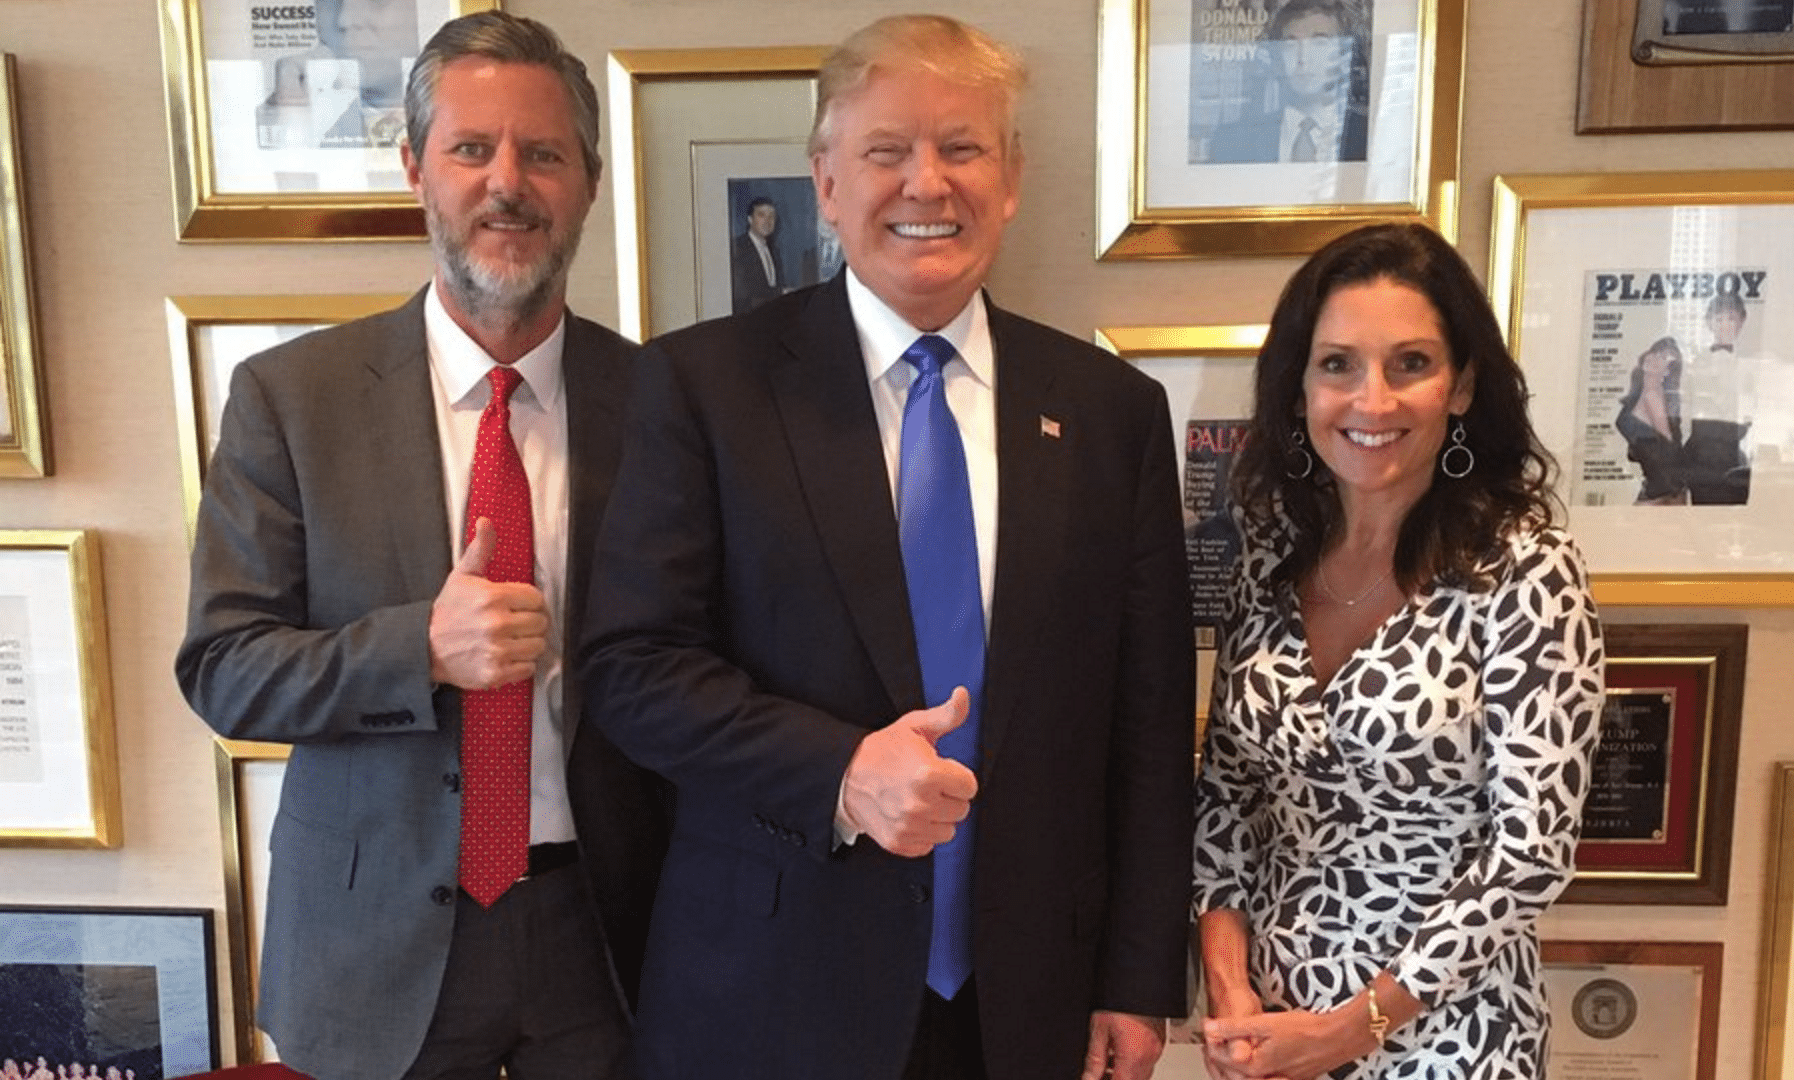 Jerry Falwell Jr., Donald Trump, and Kelli Falwell